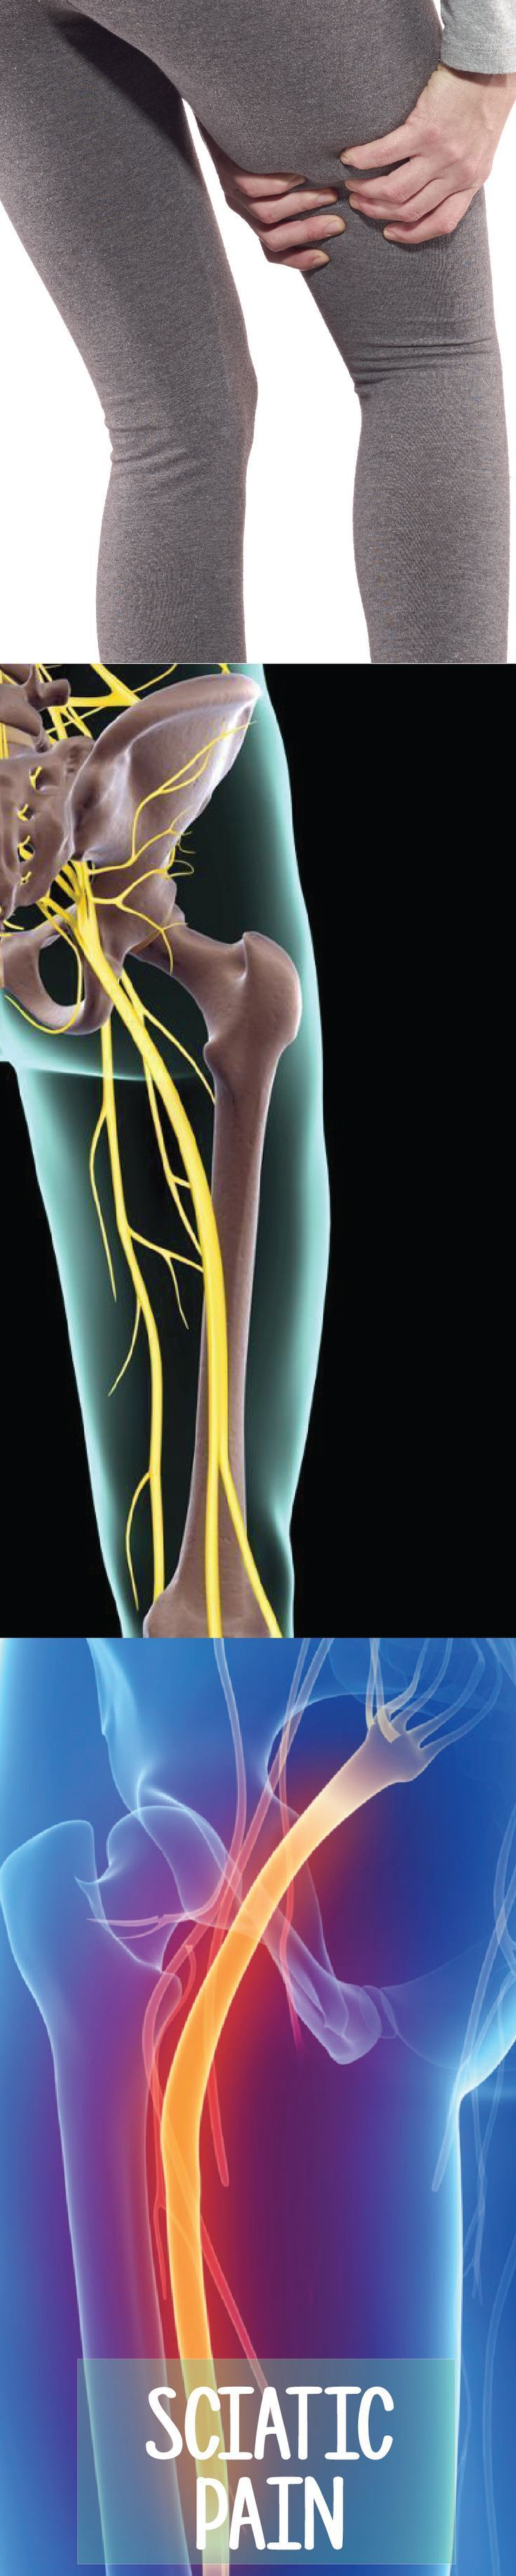 How to Manage Sciatica Nerve Pain and Reduce Leg Pain